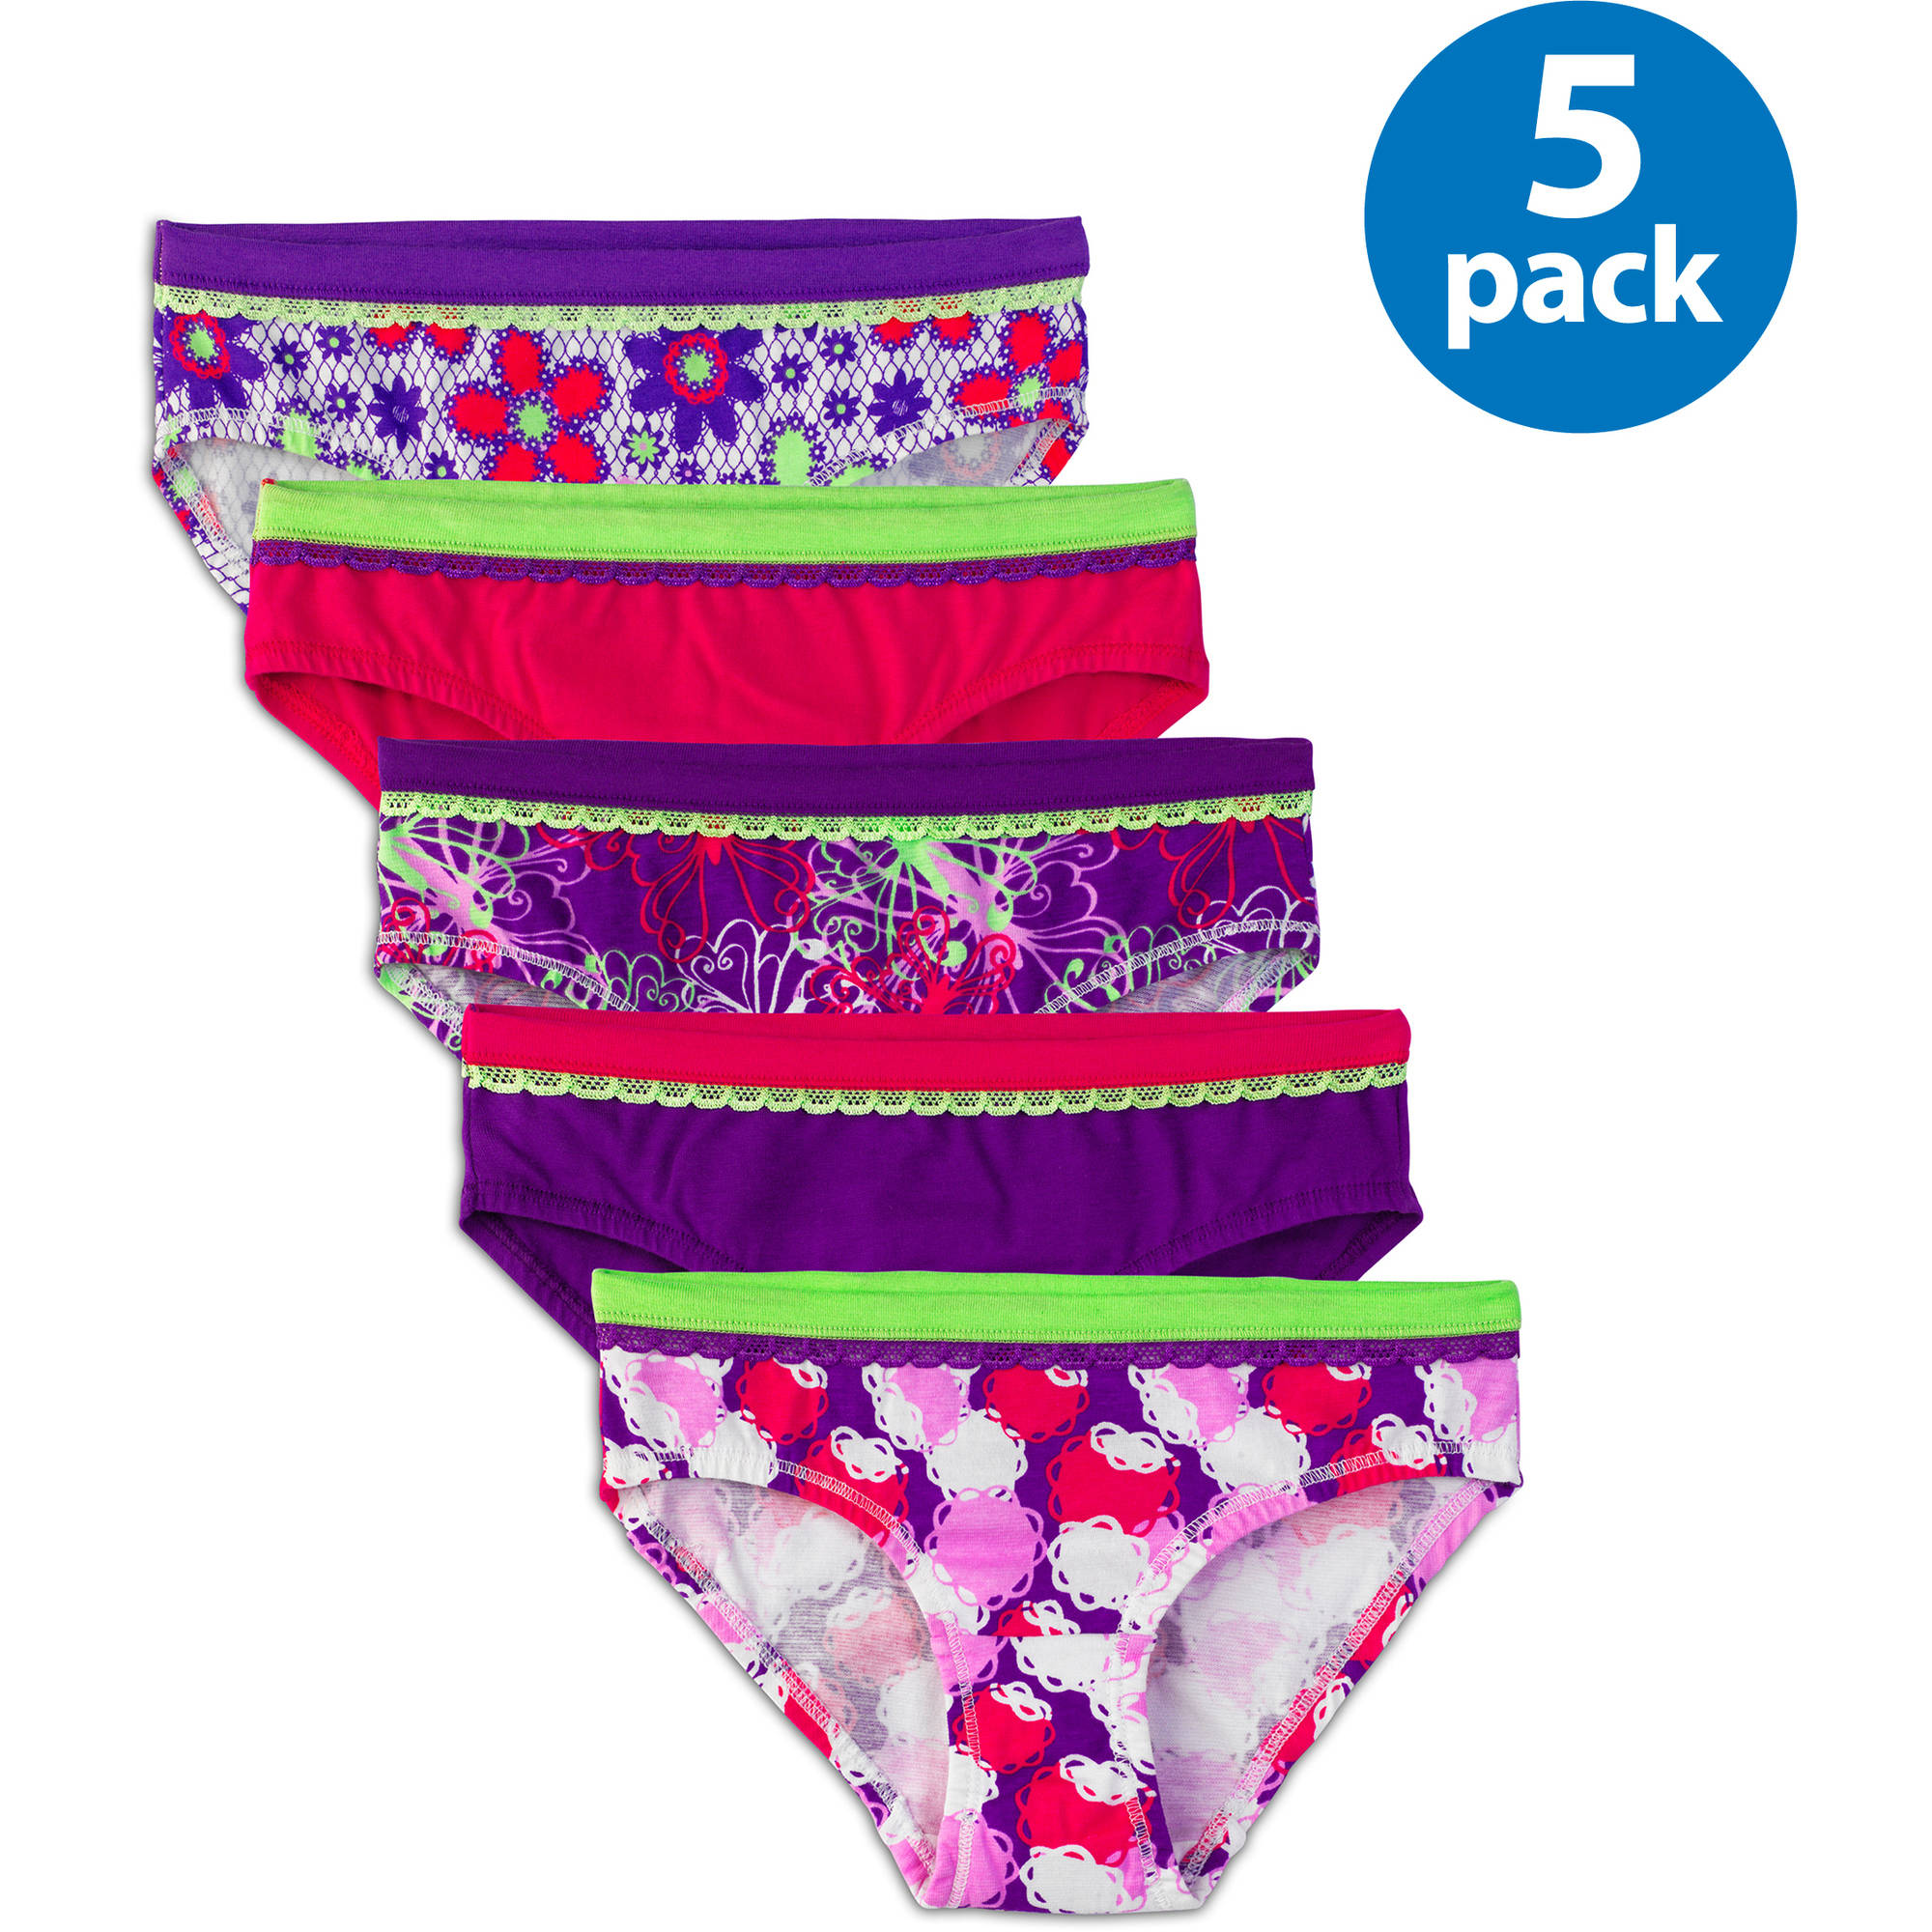 Fruit of the Loom Girls' Cotton Stretch Hipster Panties, 5 Pack